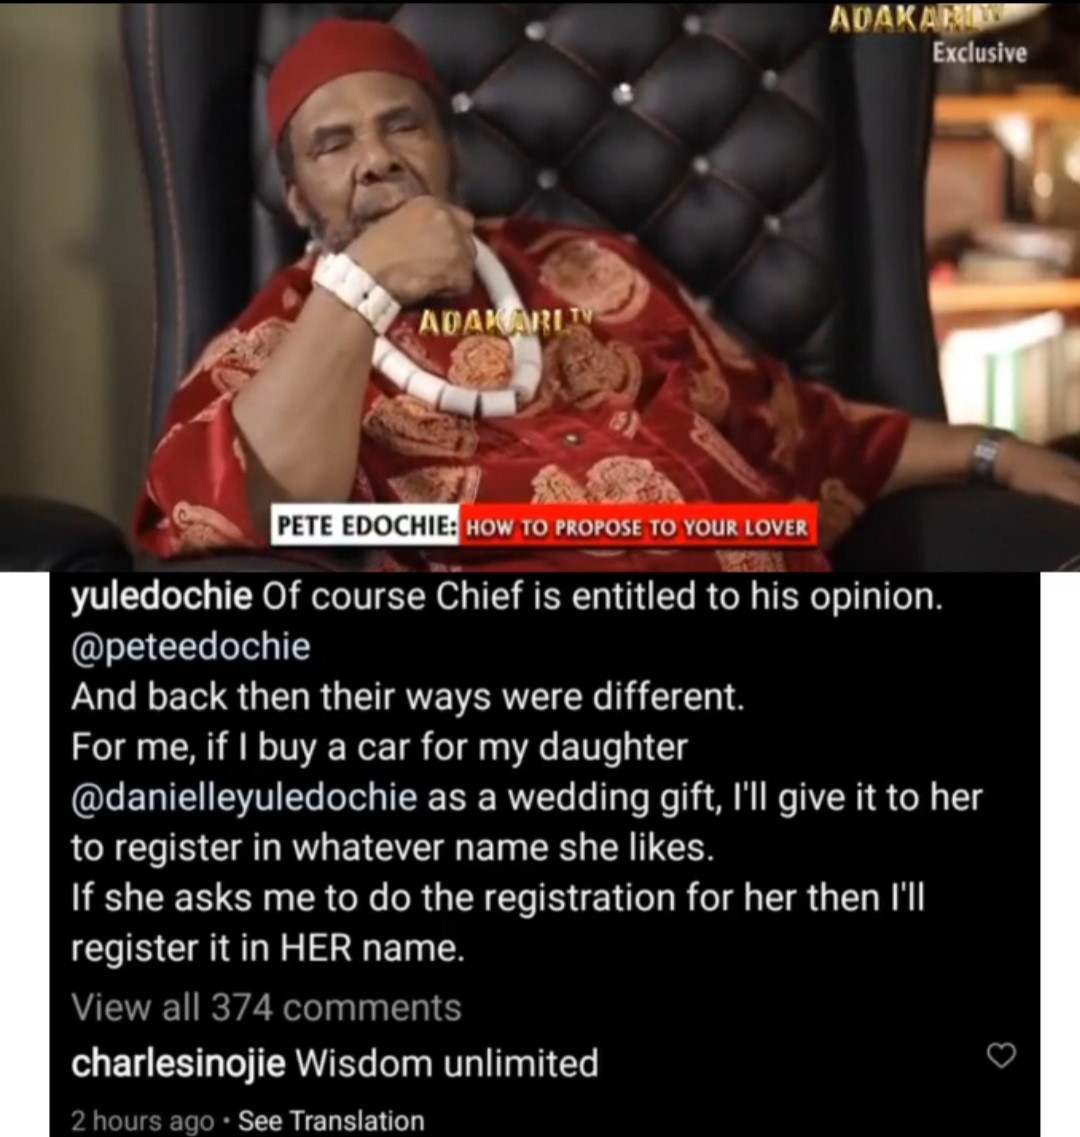 Yul Edochie disagrees with his father Pete Edochie